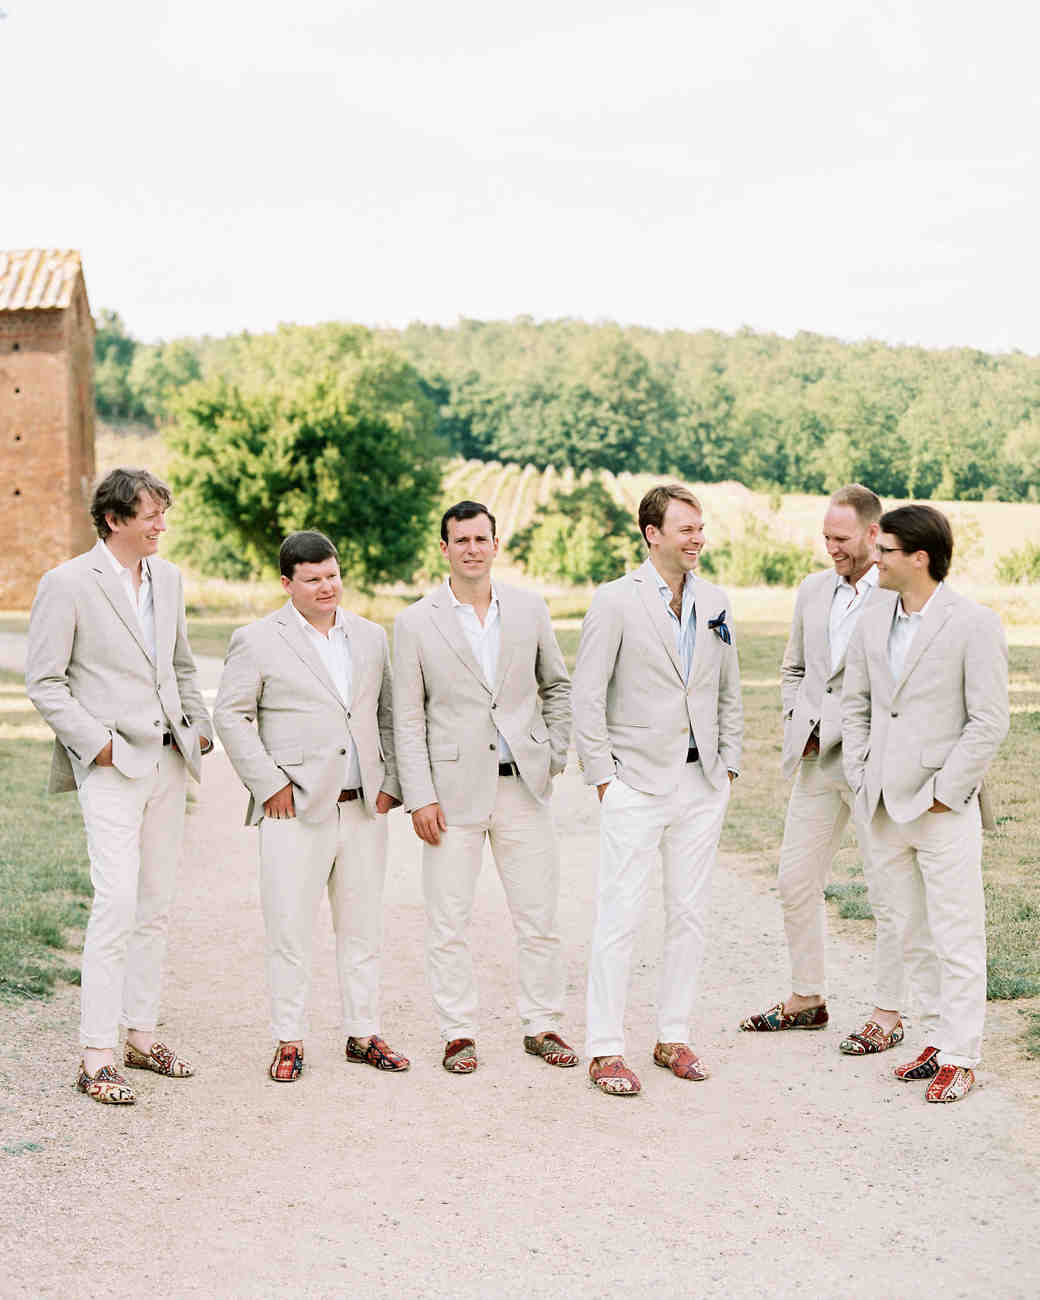 alexis zach wedding italy groomsmen